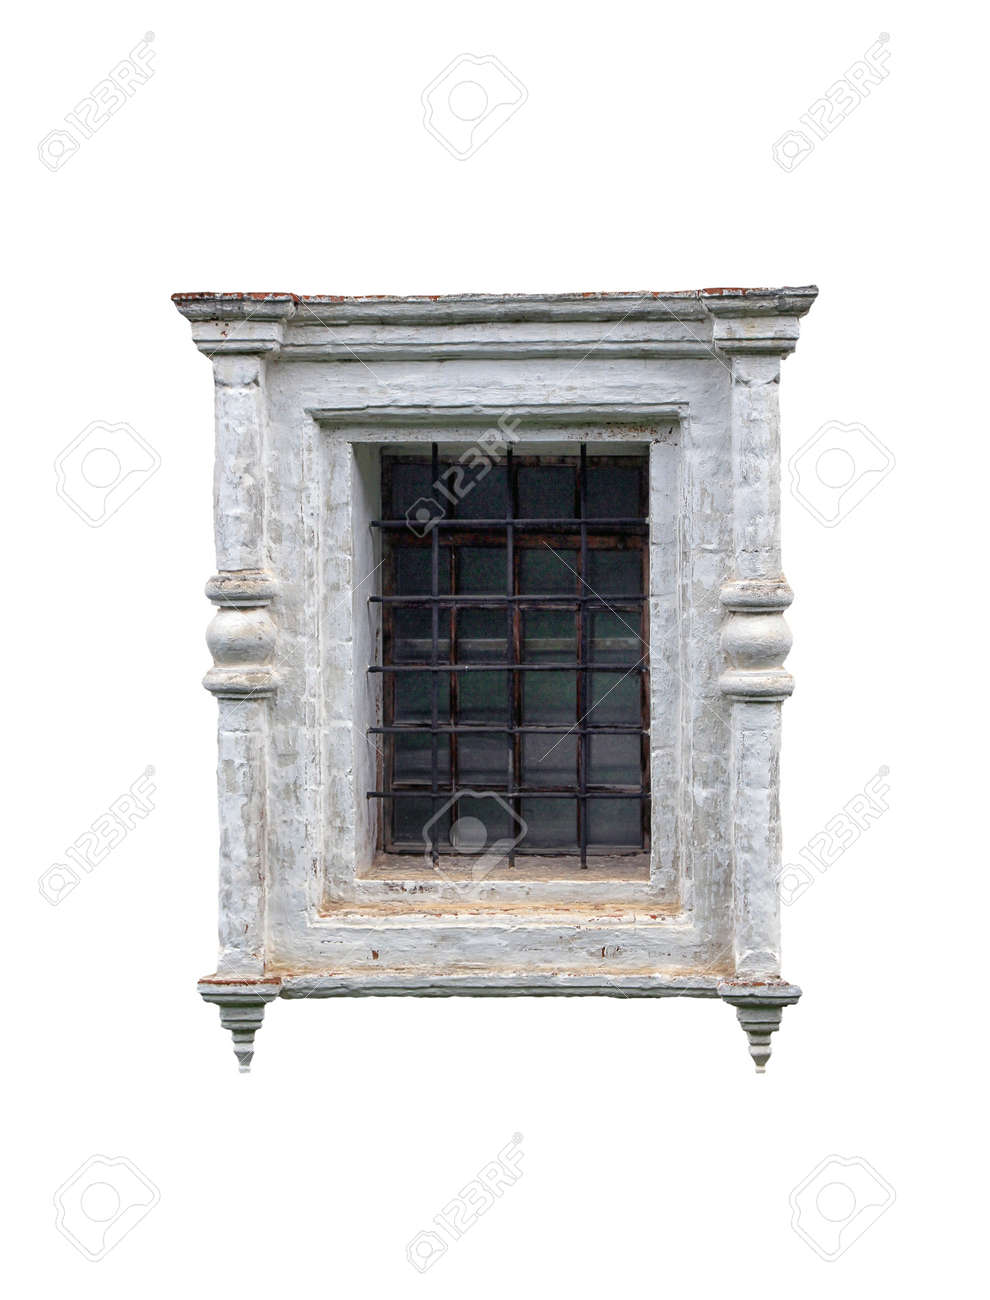 White Plaster Block Window Frame With Bars In Old Russian Style ...